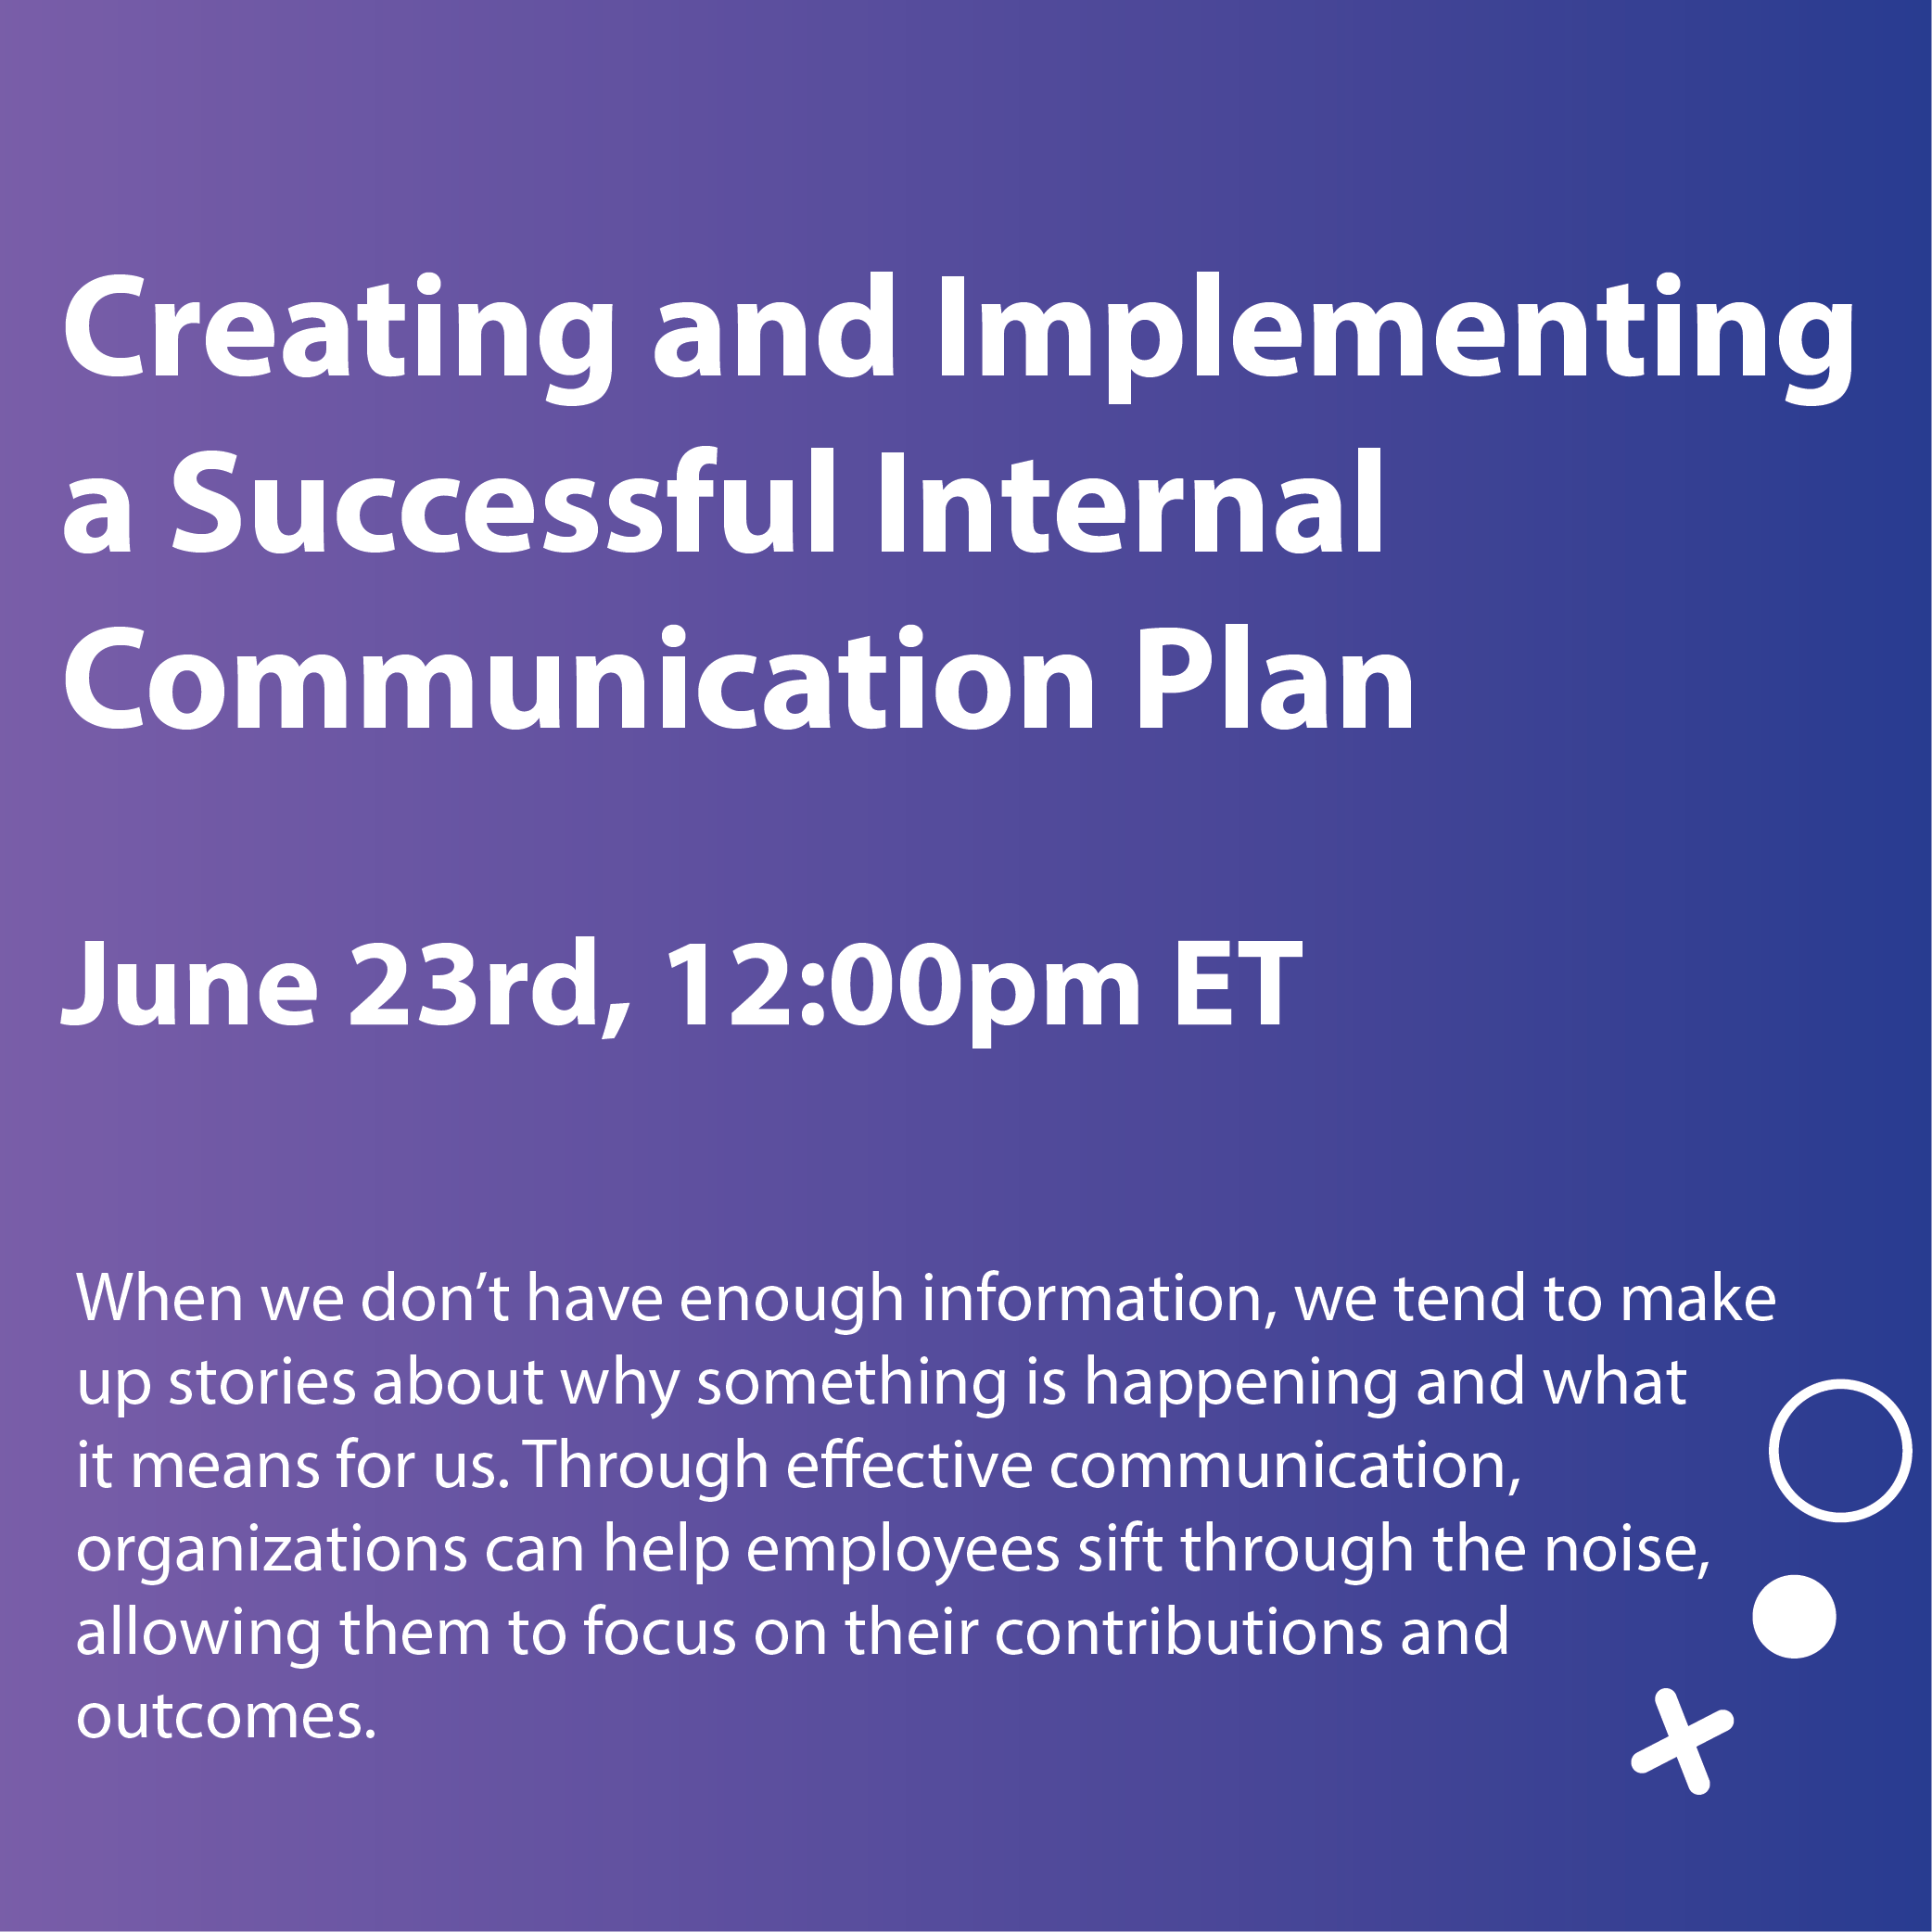 Creating and Implementing a Successful Internal Communication Plan